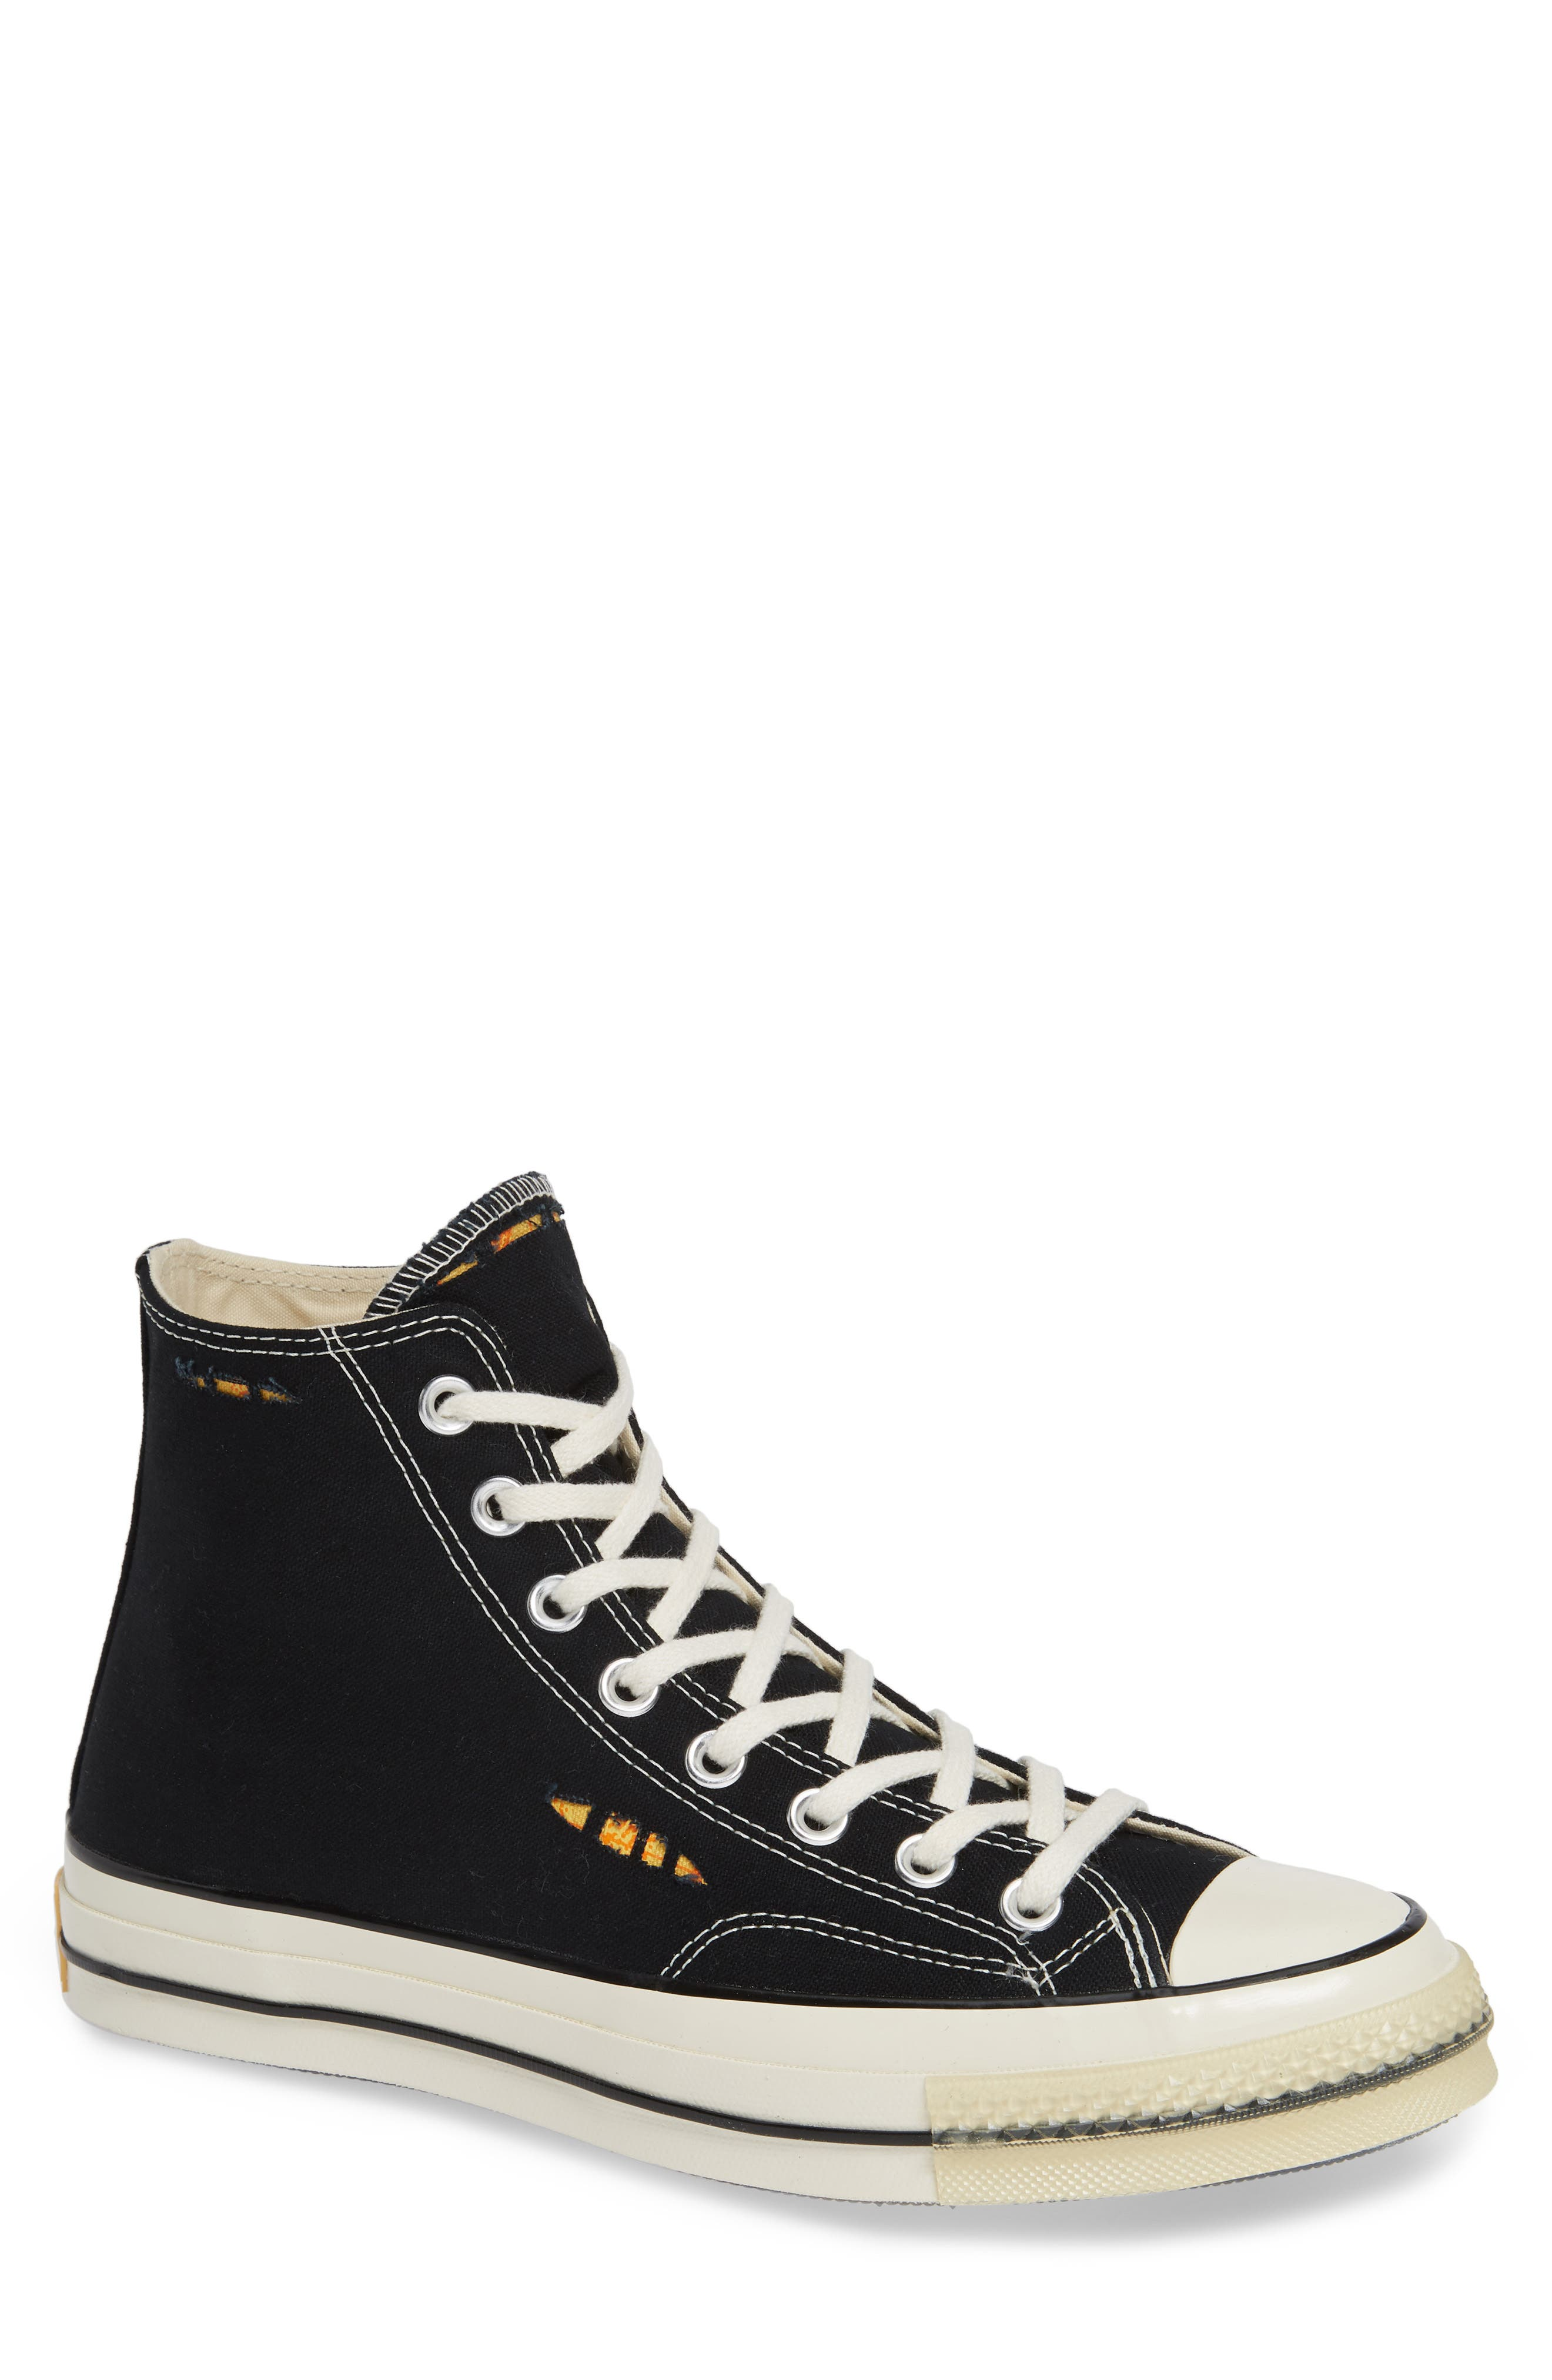 x Dr. Woo Chuck 70 Sneaker,                         Main,                         color,